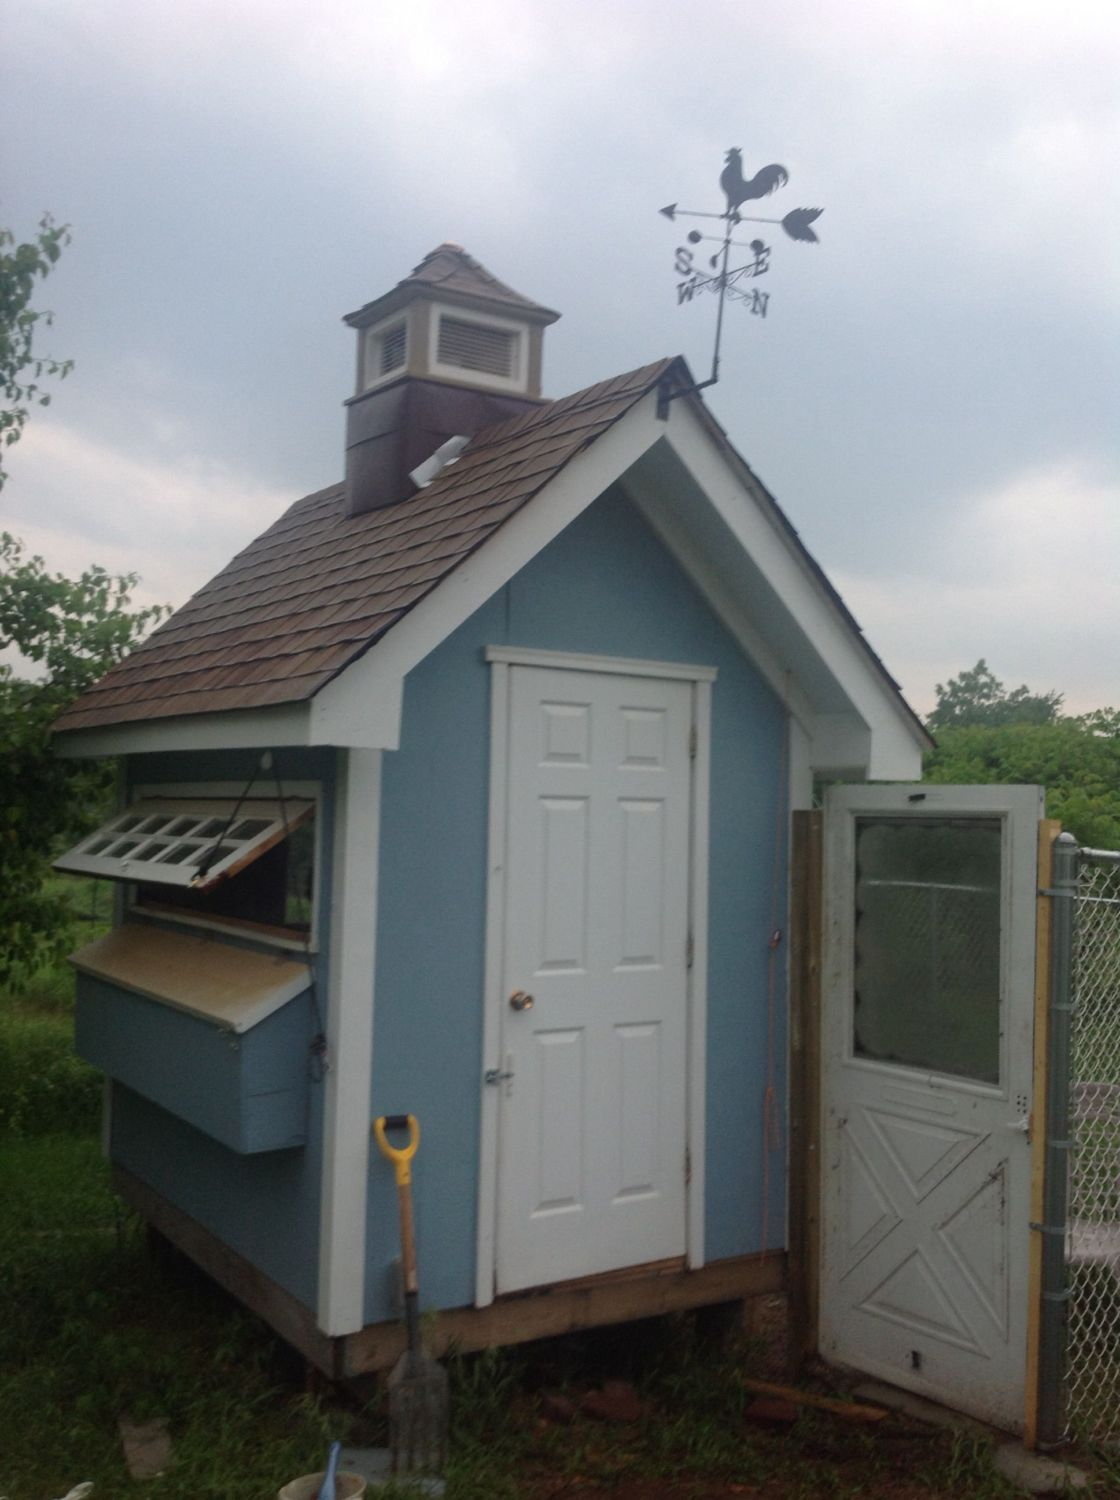 Final touch on the coop with a weather vane. Started the run with an old screen door and used chain link fencing.